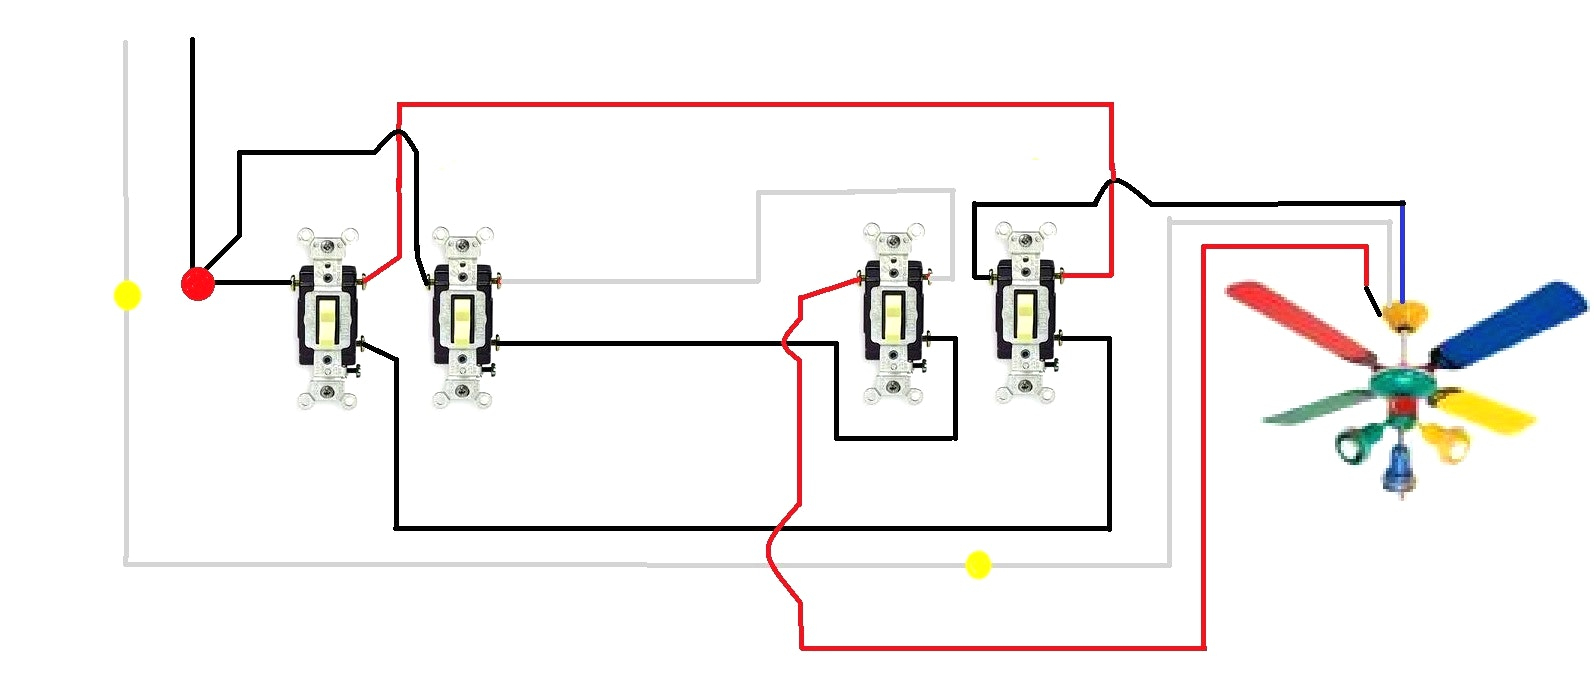 Wiring Diagram For Ceiling Fan With Wall Switch | Wiring Library - Ceiling Fan Wall Switch Wiring Diagram